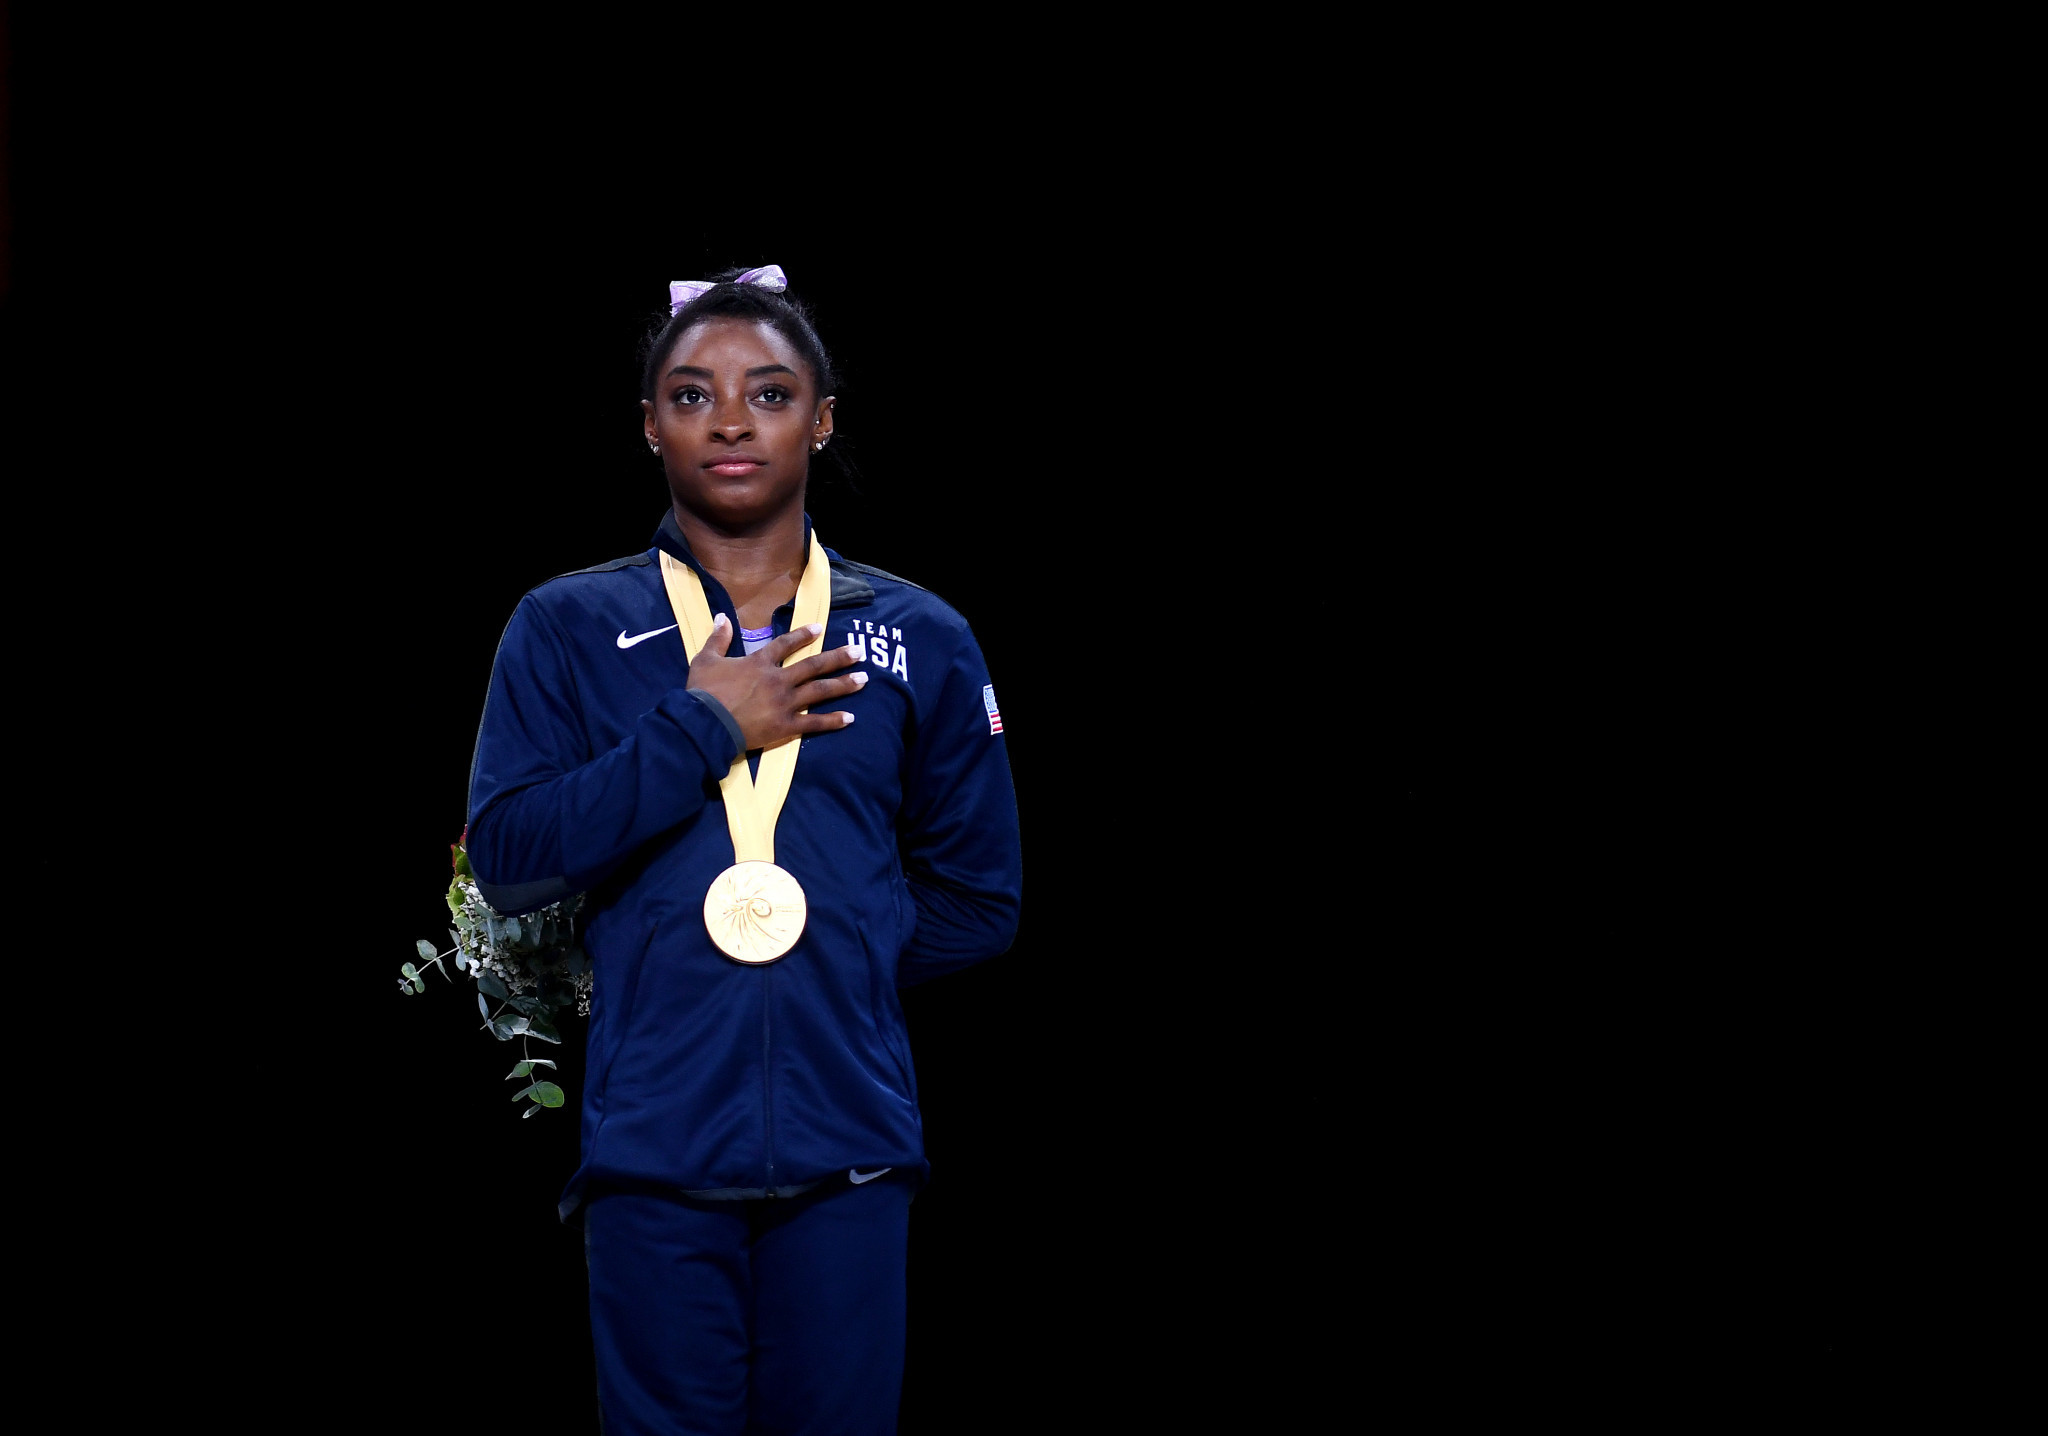 Biles listed as plaintiff for first time in ongoing lawsuit against USA Gymnastics and USOPC